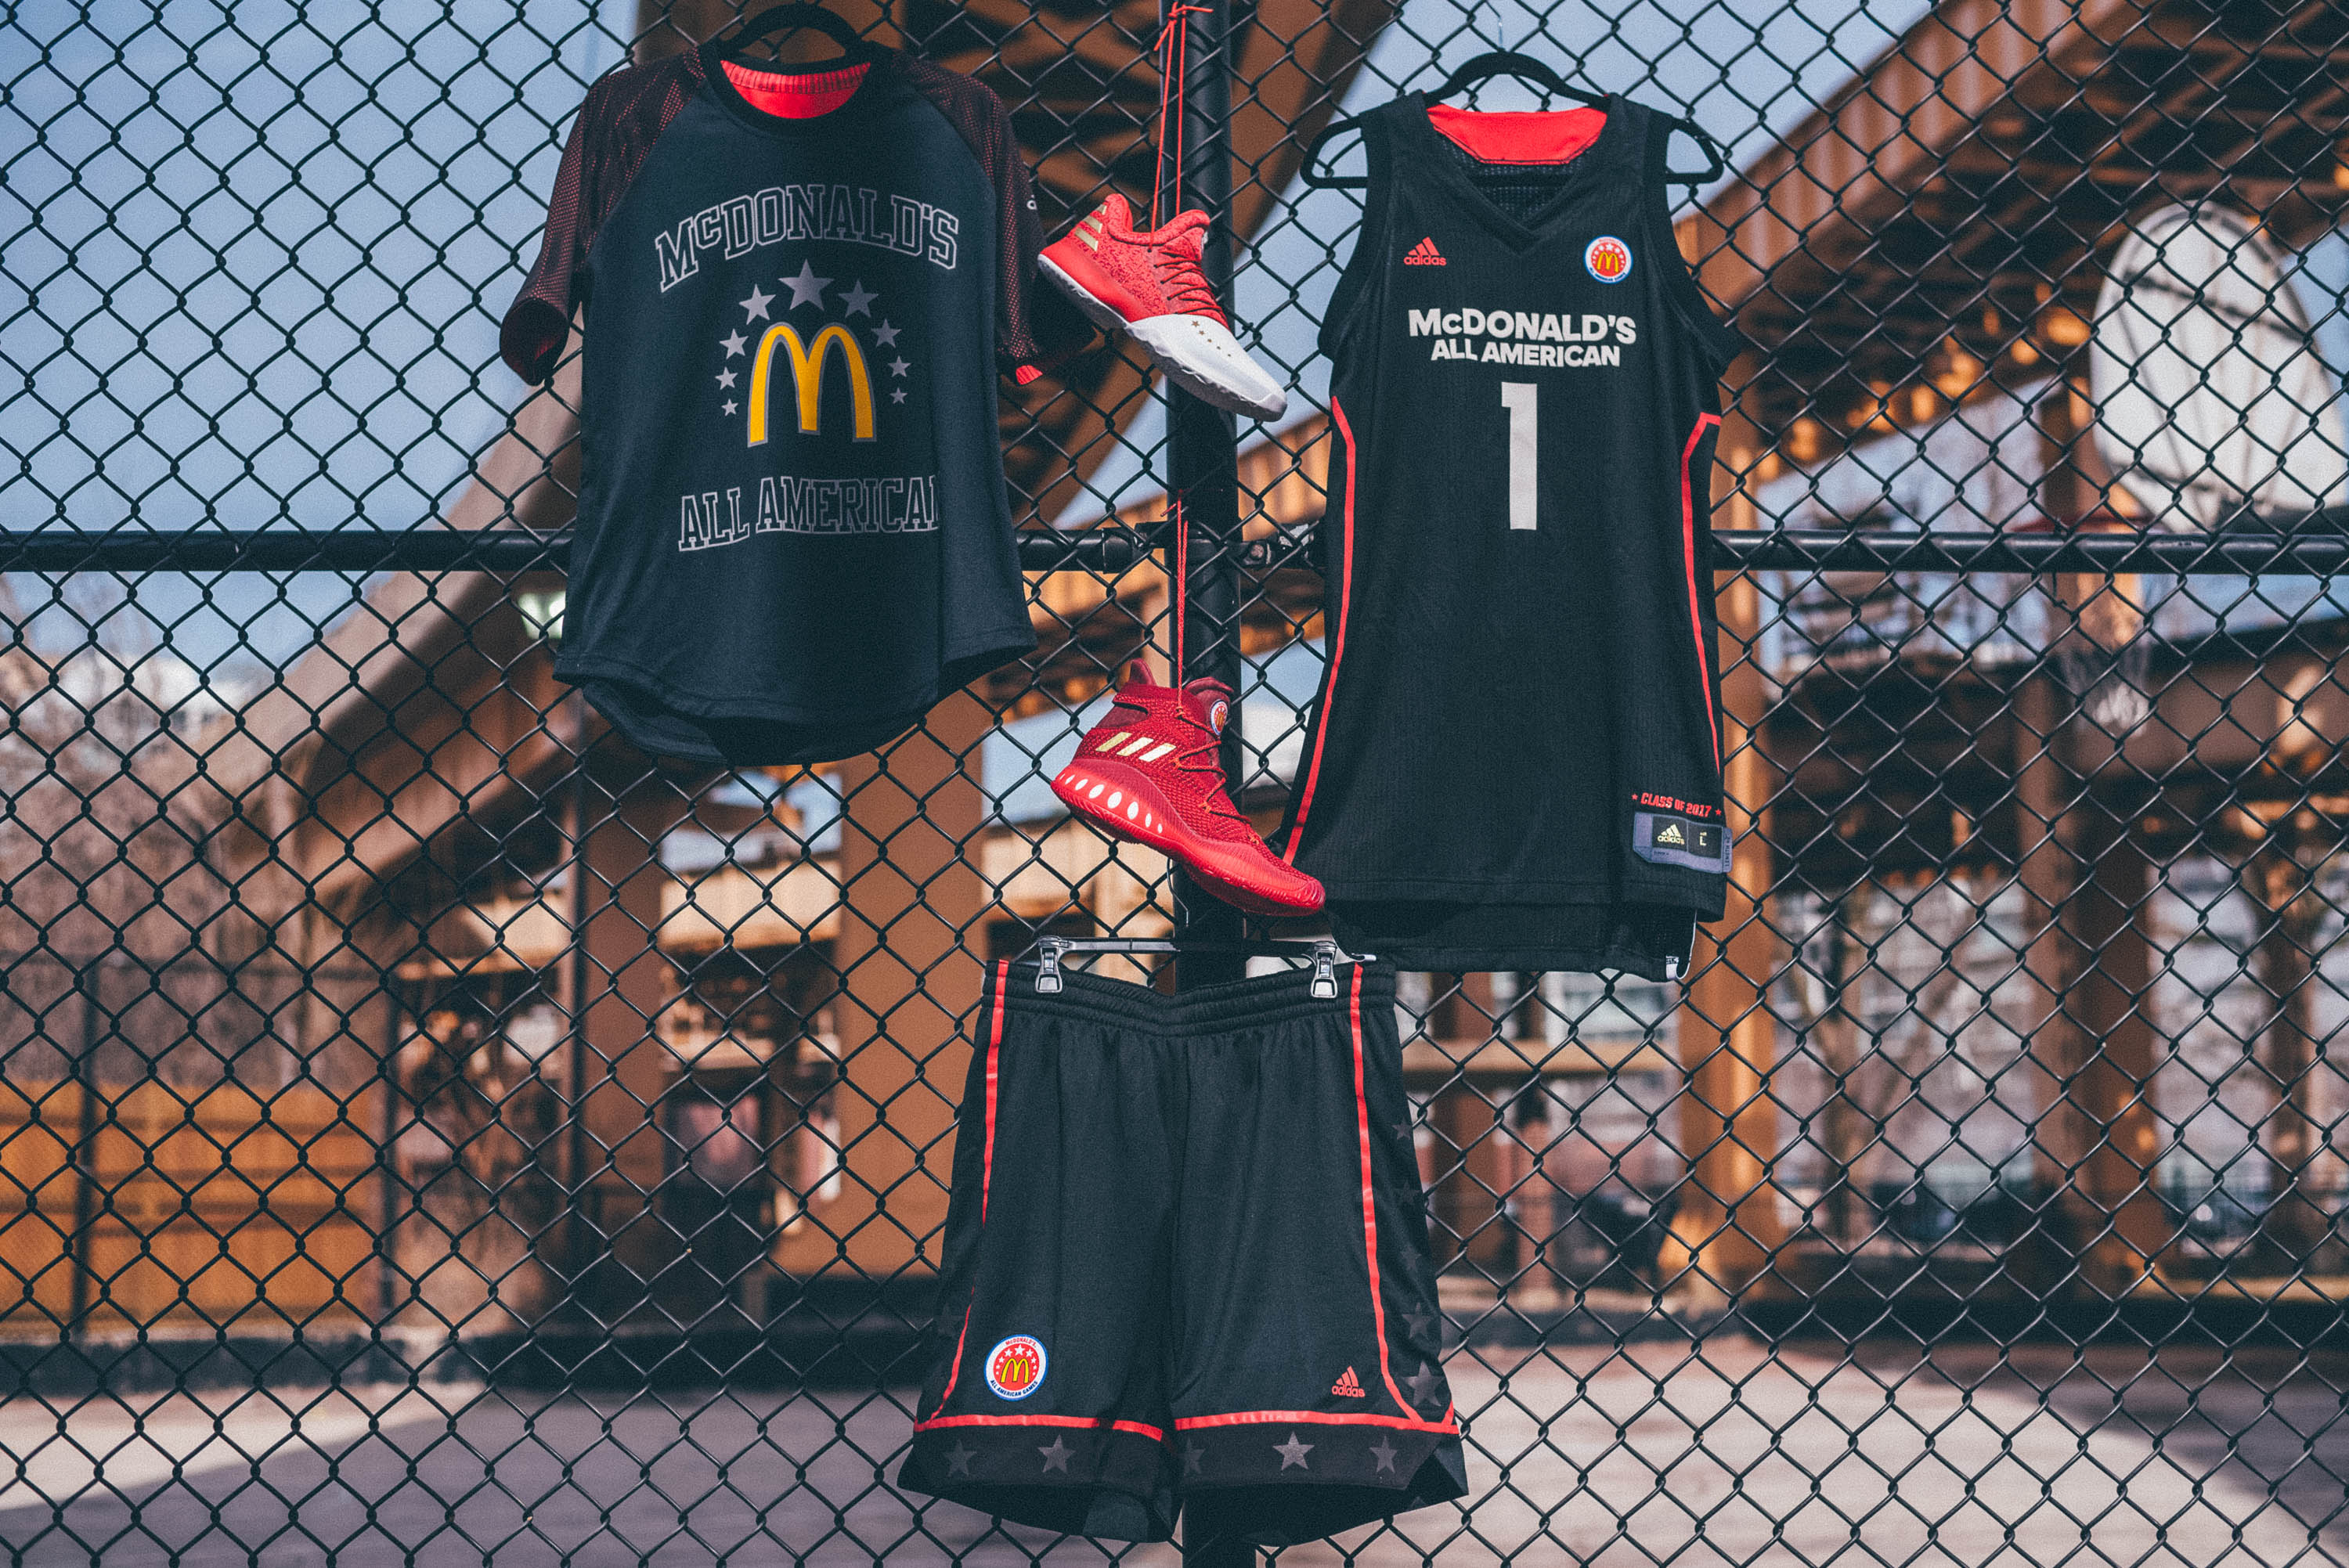 Adidas unveils official jerseys for the 2017 McDonald s All American Games 3b75b1103